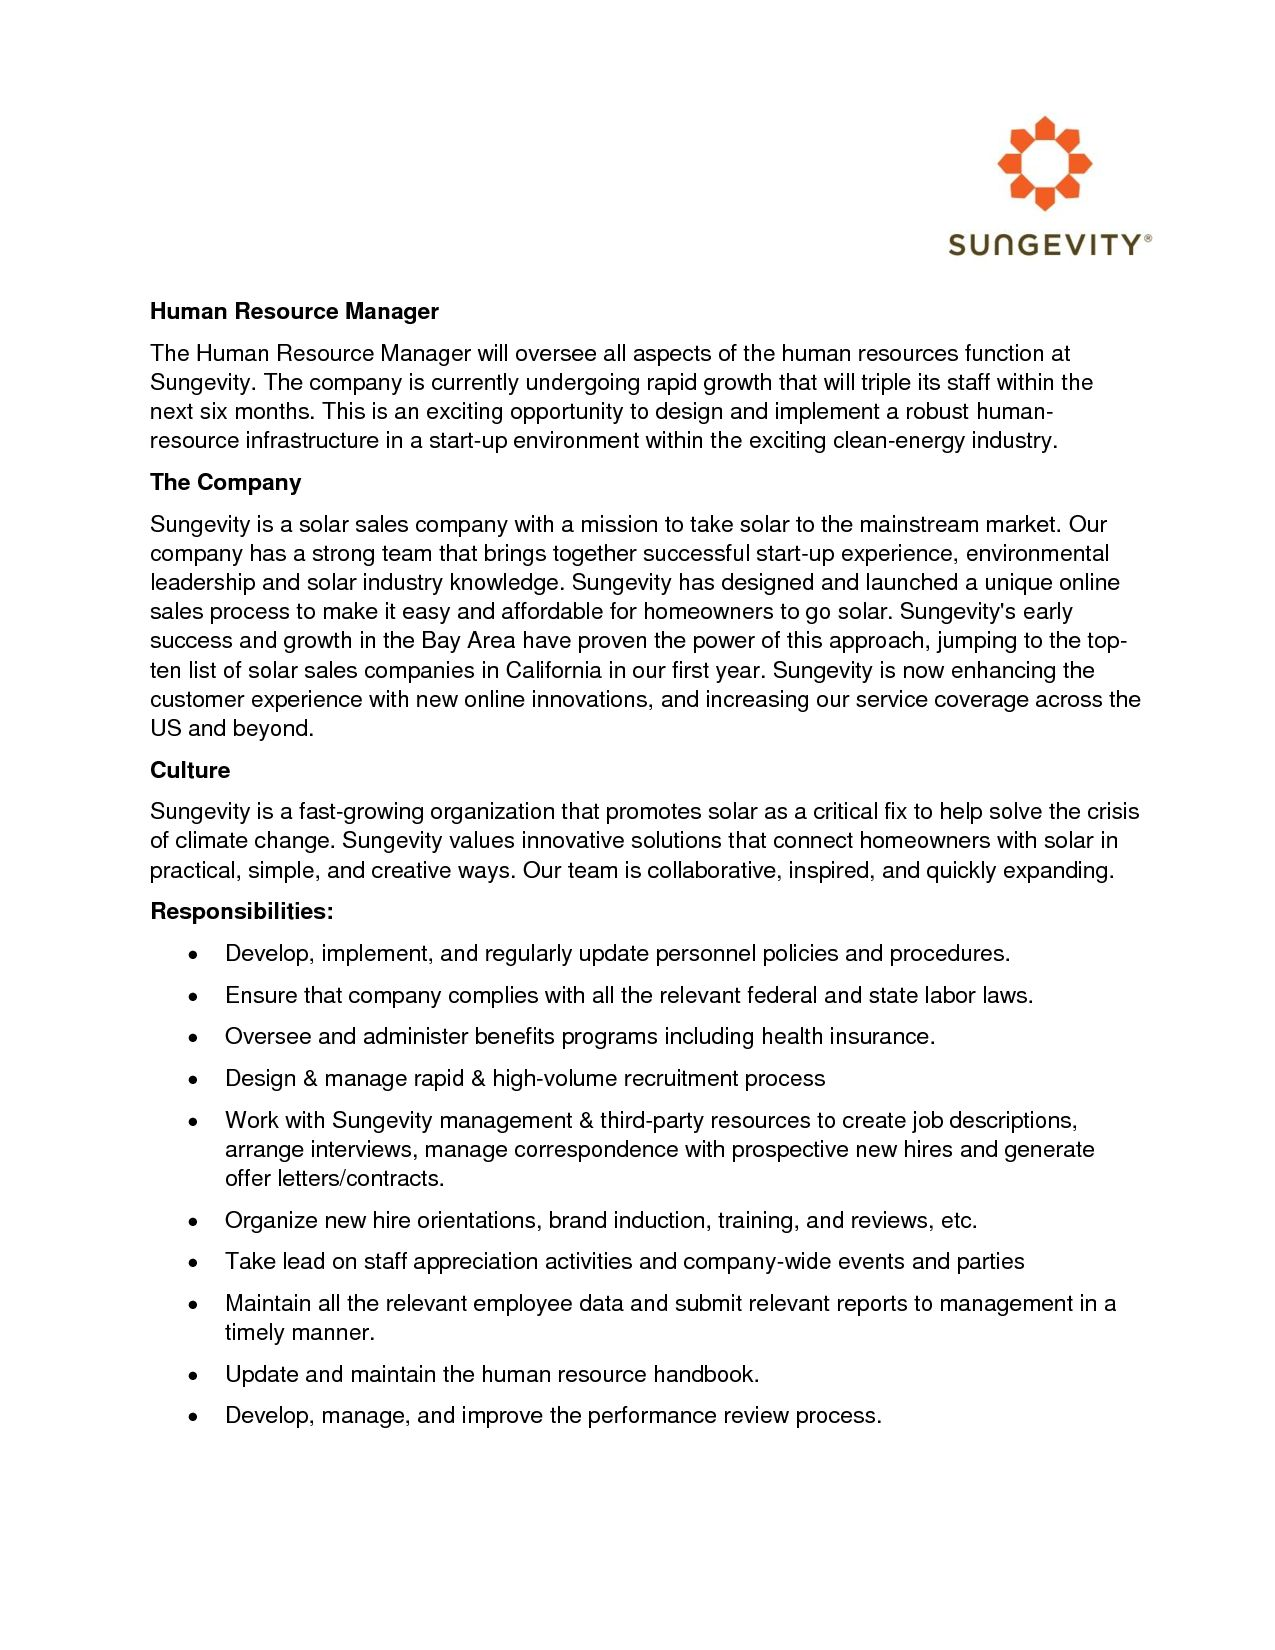 23 Human Resources Cover Letter Human Resources Cover Letter Help